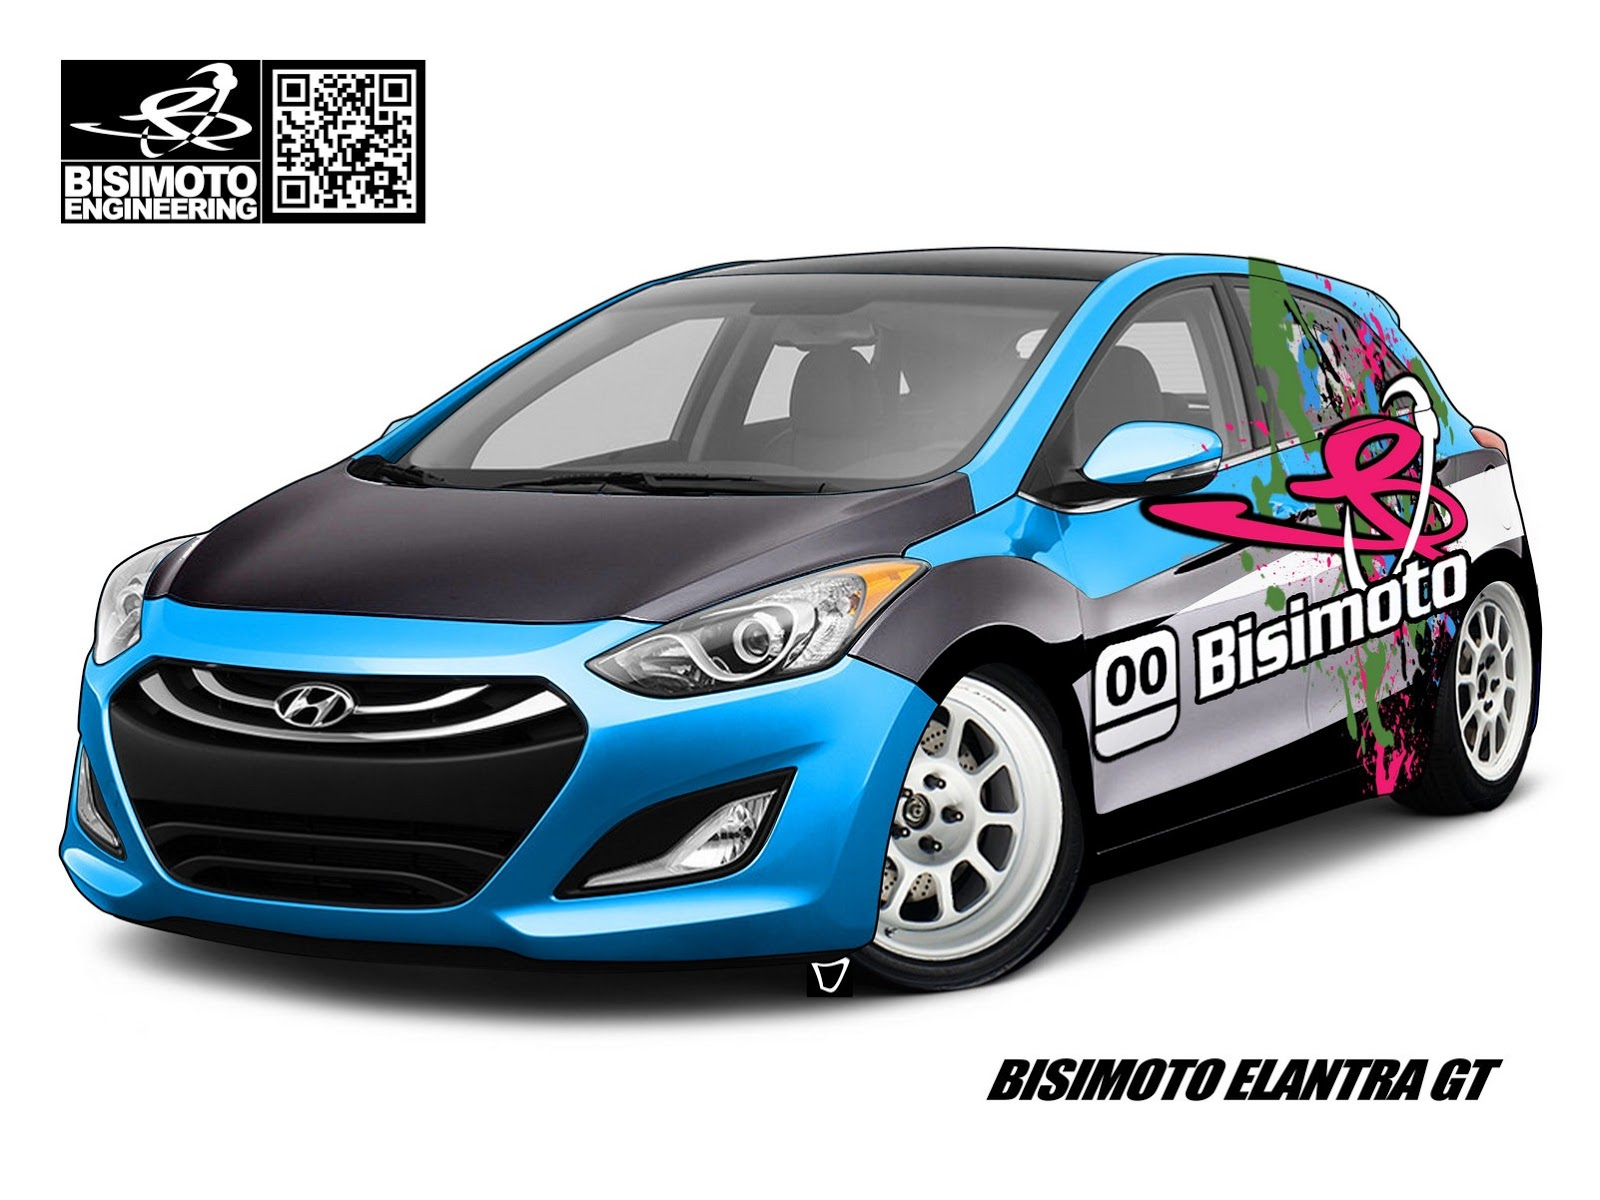 Bisimoto Engineering presents Hyundai Elantra GT tuning kit